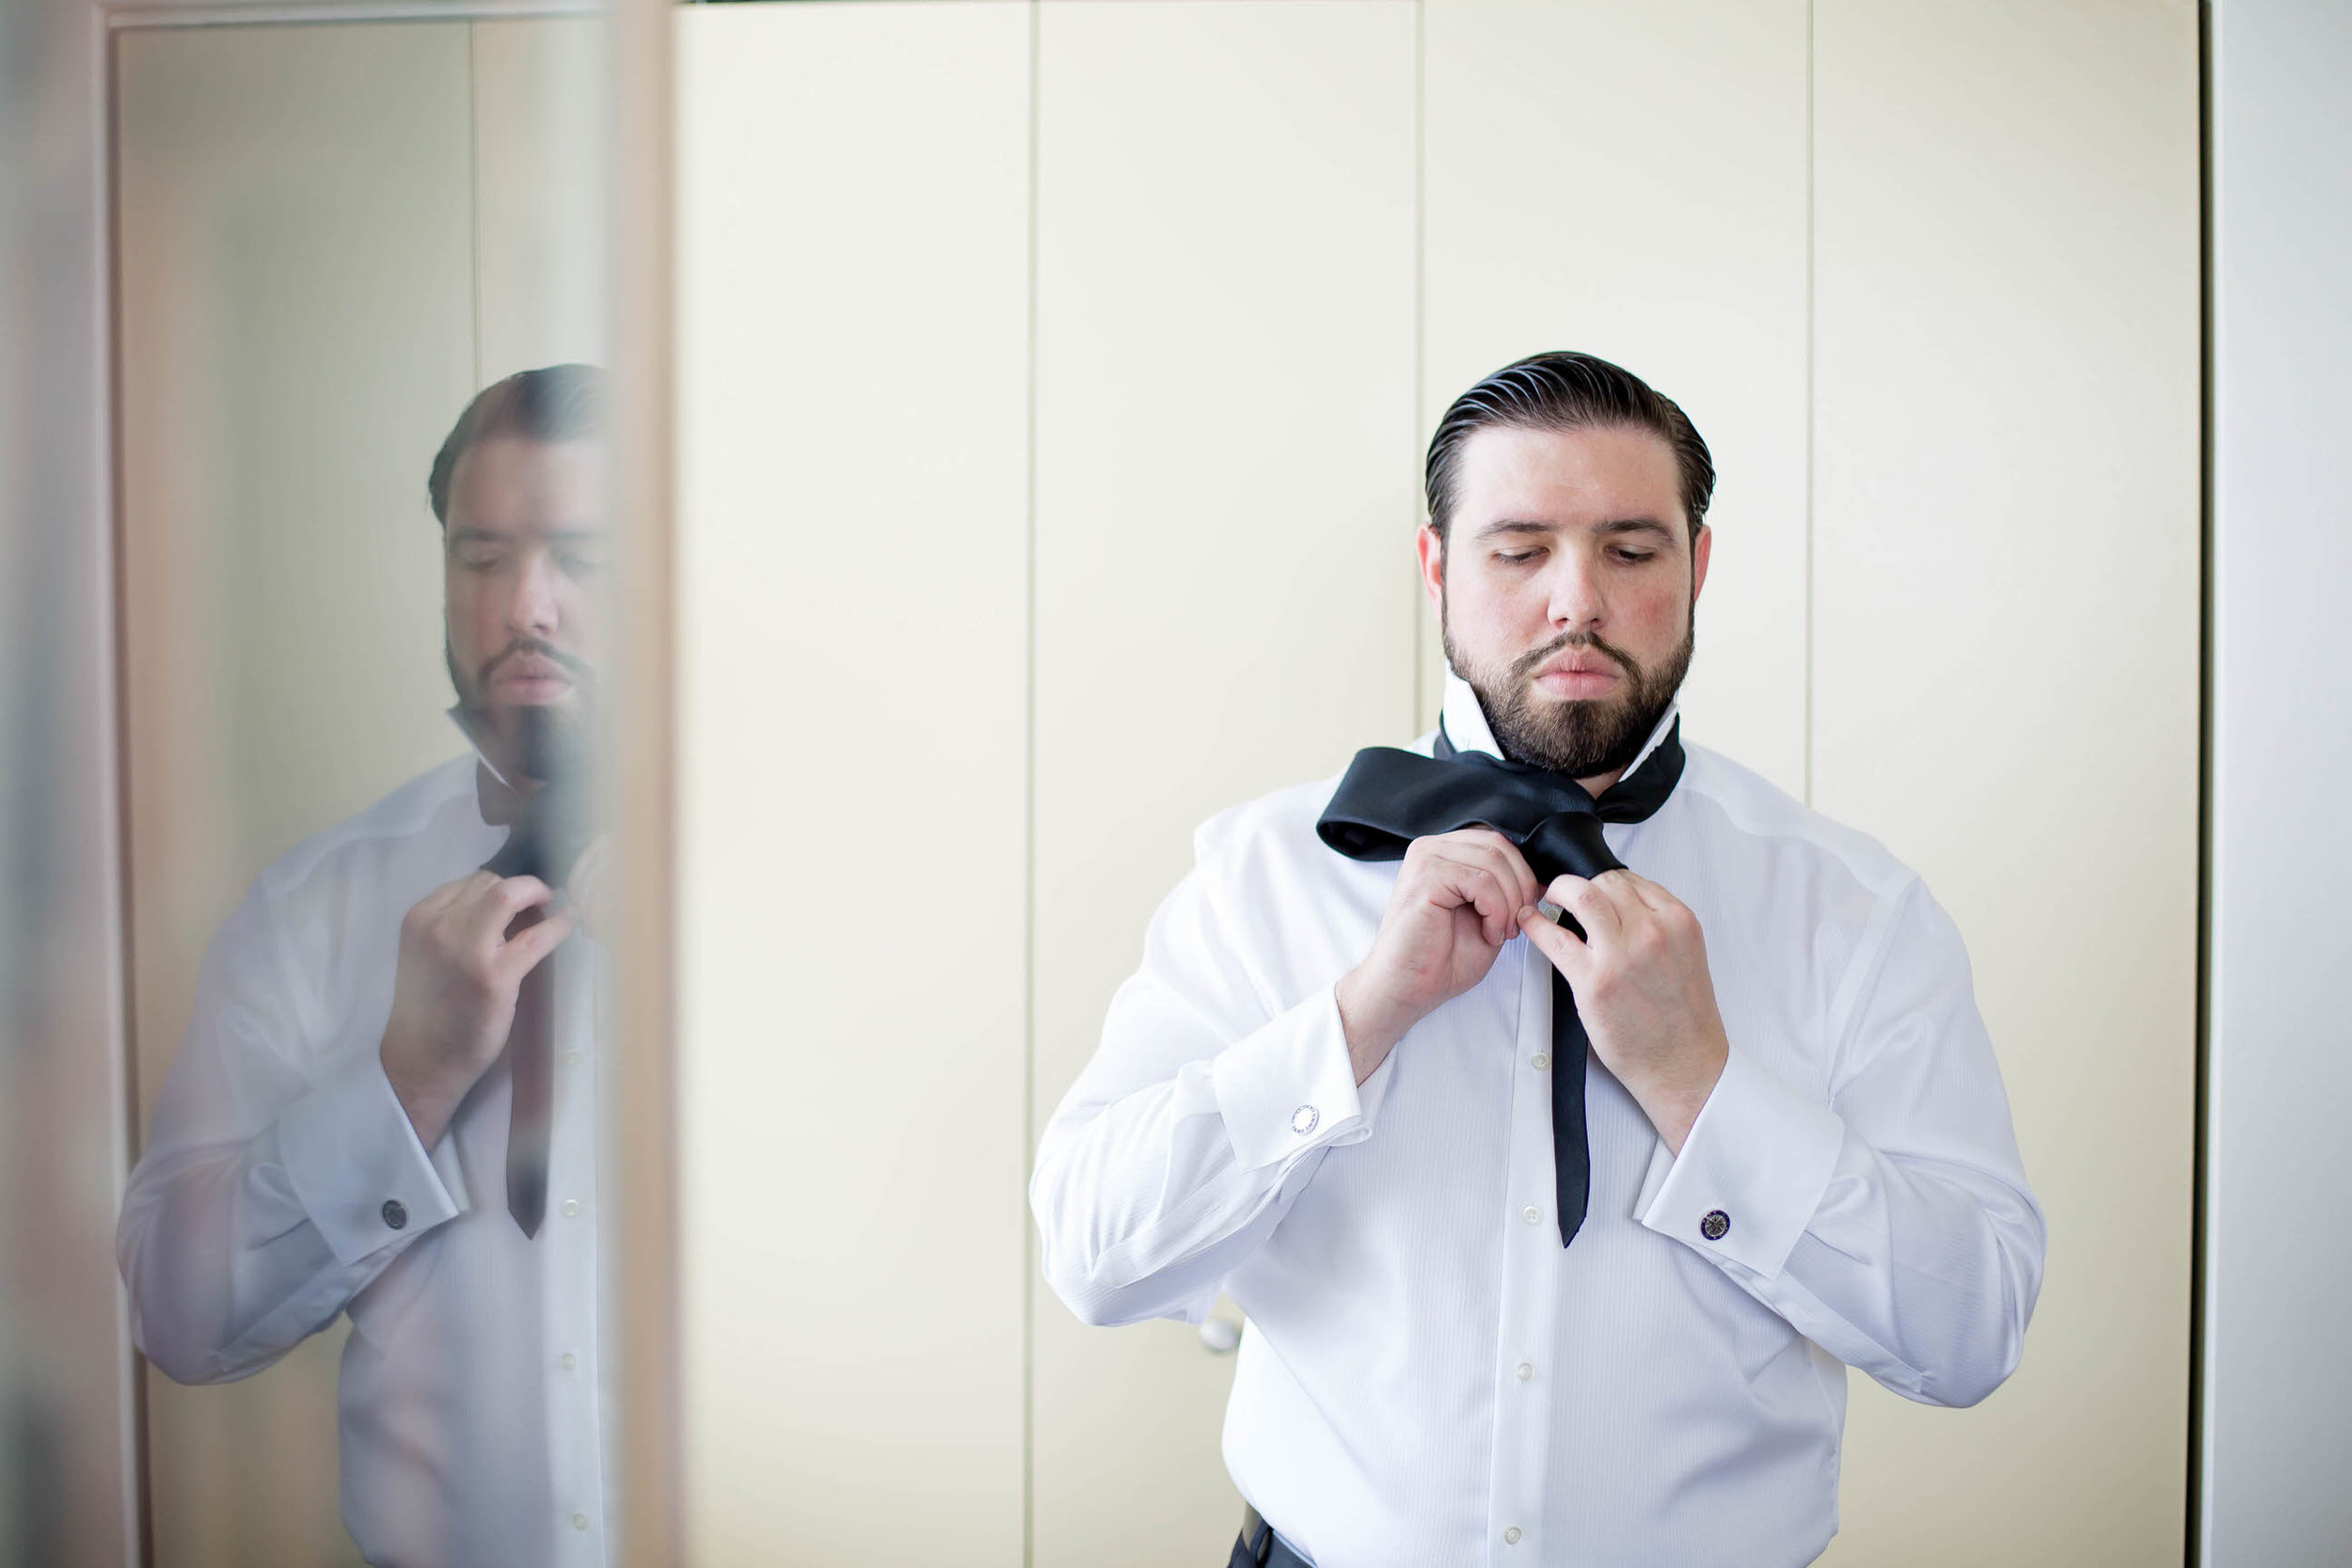 tying_tie_groom_wedding_day_tiny_house_photo.jpg